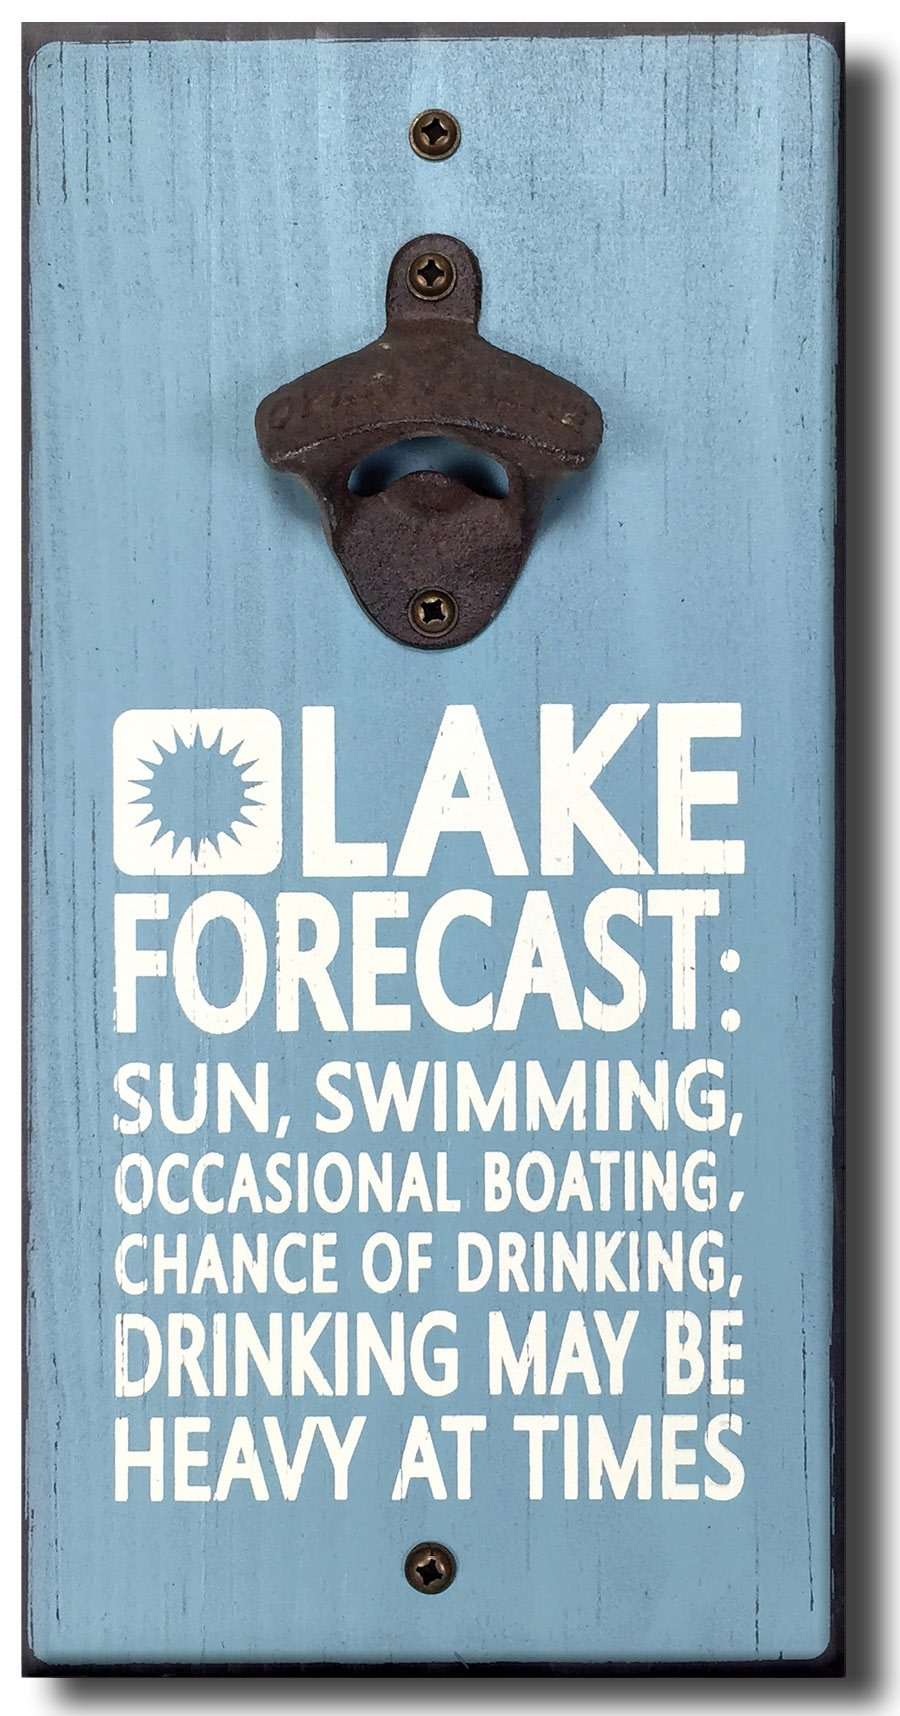 Lake Forecast - Wooden Wall Mounted Bottle Opener by My Word!